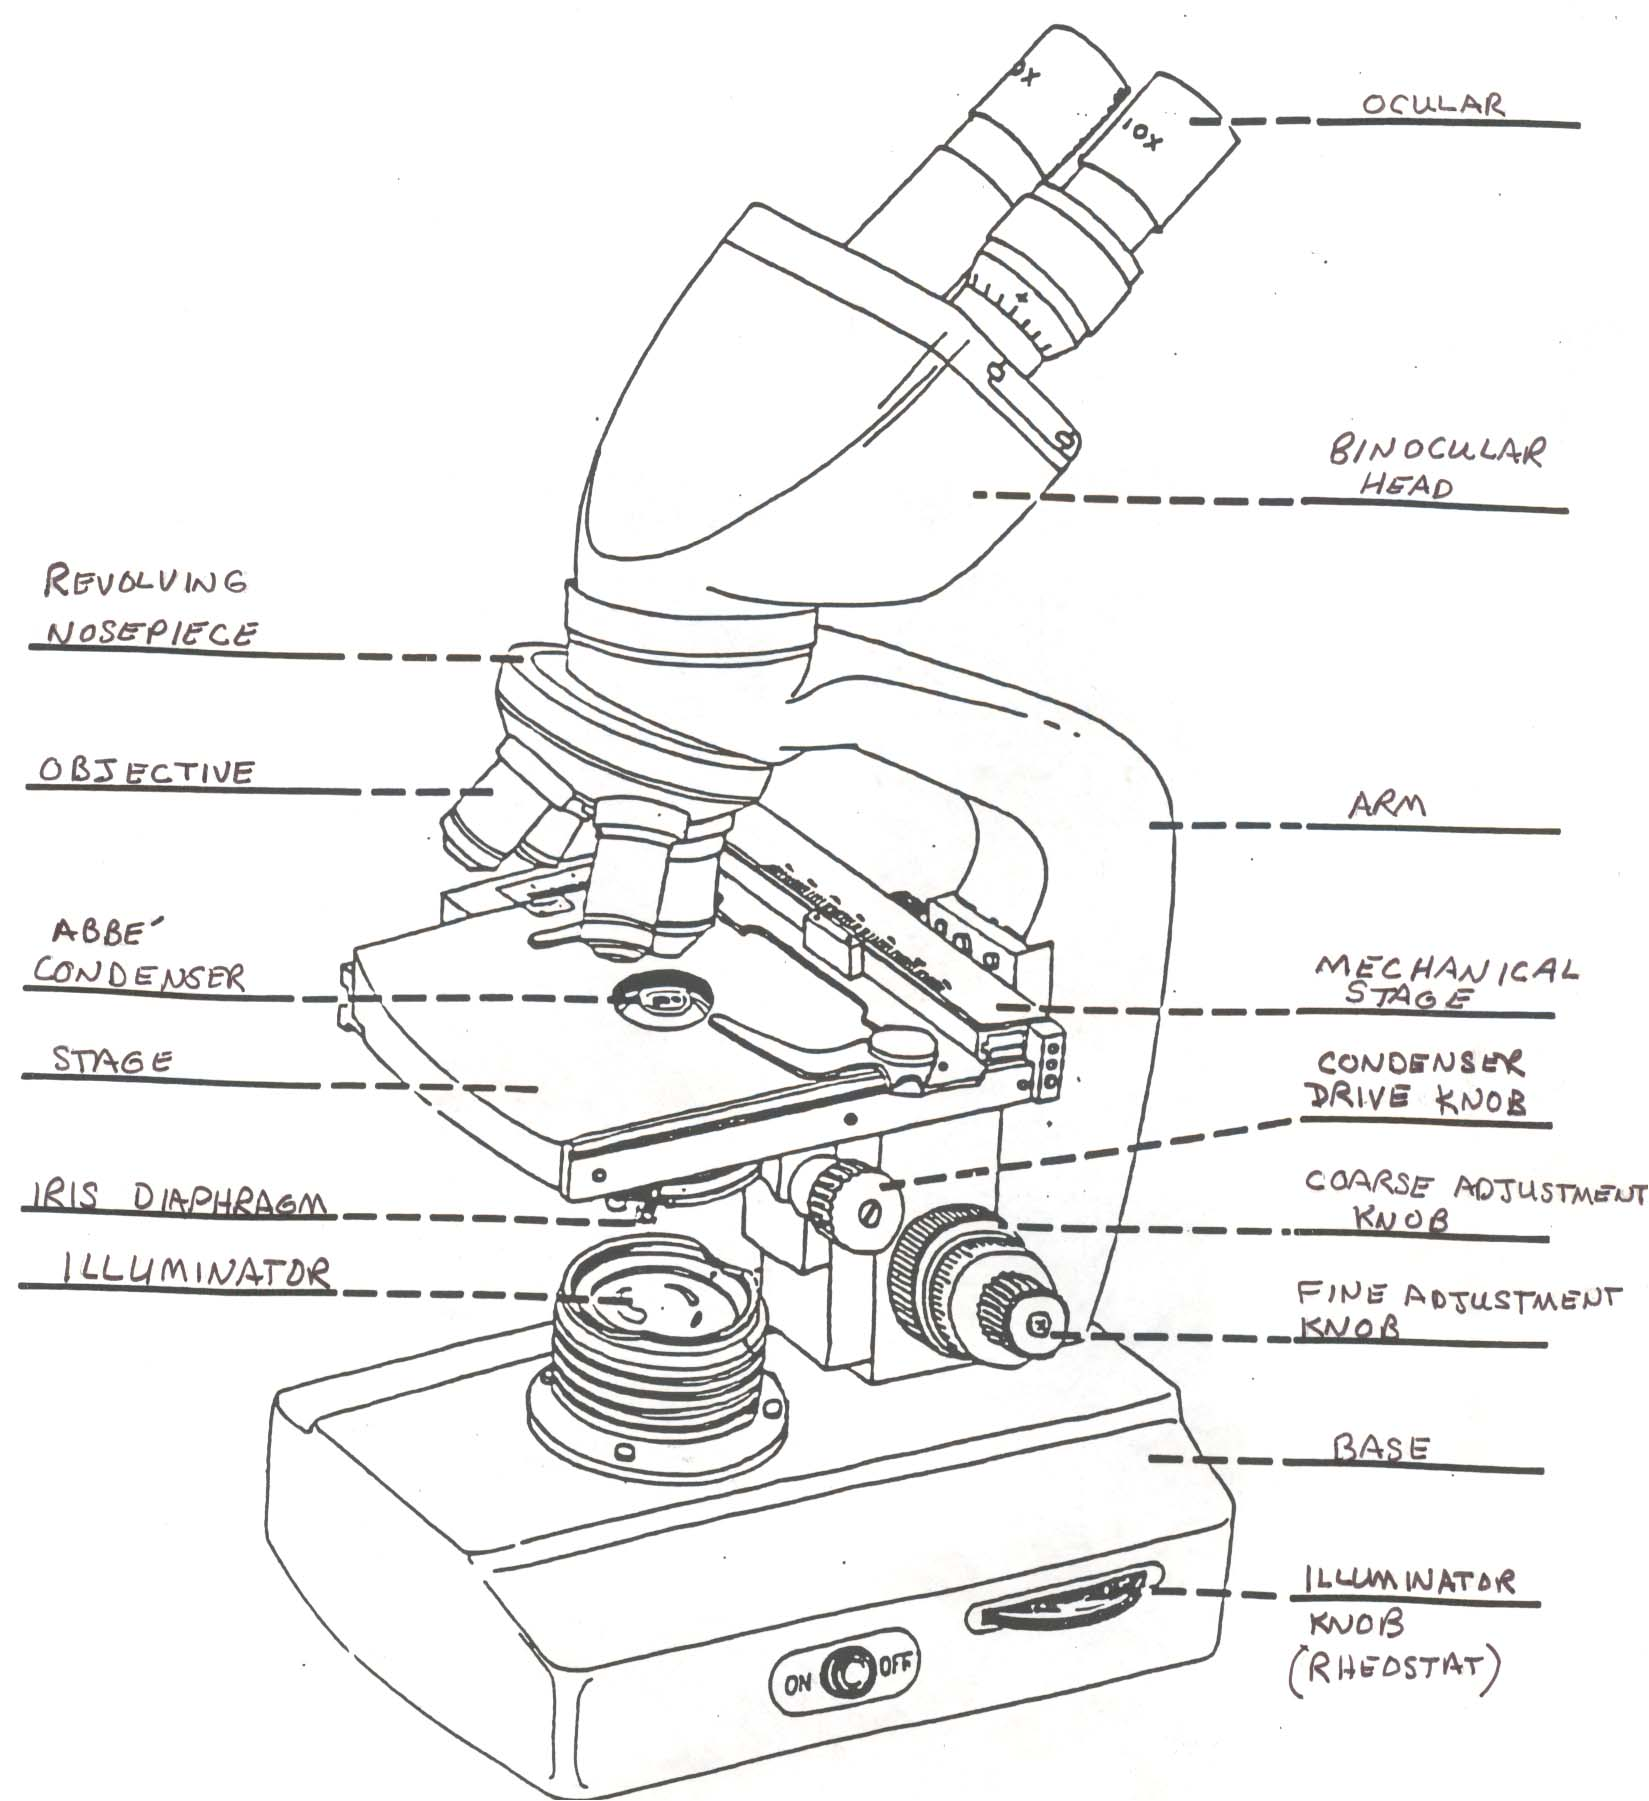 What Sort Of Microscopes Are Used In Schools And Universities